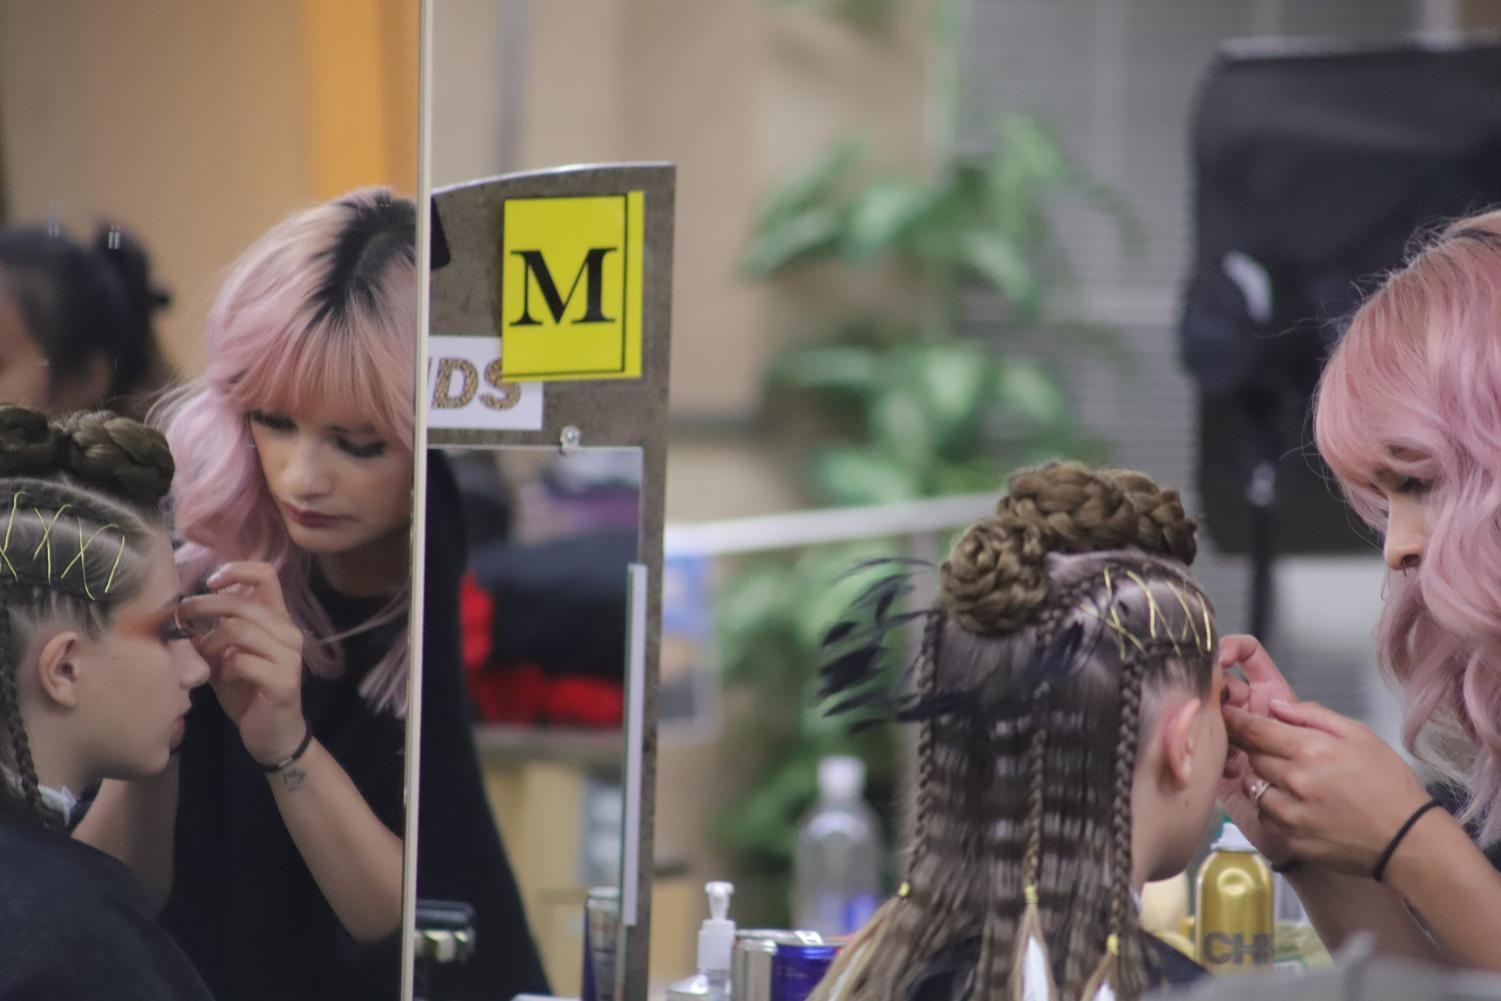 Freshman+technician+Layla+Ojeda+applies+makeup+to+her+model+Emily+Sonner+during+the+2018+Cosmetology+Spring+Hair+Competition+held+in+the+cosmetology+building+at+SJCC+on+Friday%2C+April+27.+Ojeda+and+Sonner+placed+Second+in+%E2%80%9CMakeup%2C%E2%80%9D+First+in+%E2%80%9CHair%E2%80%9D+and+Second+in+the+%E2%80%9CTotal+Look%E2%80%9D+categories+at+the+Spring+Hair+show+held+at+The+Glasshouse+later+that+night.